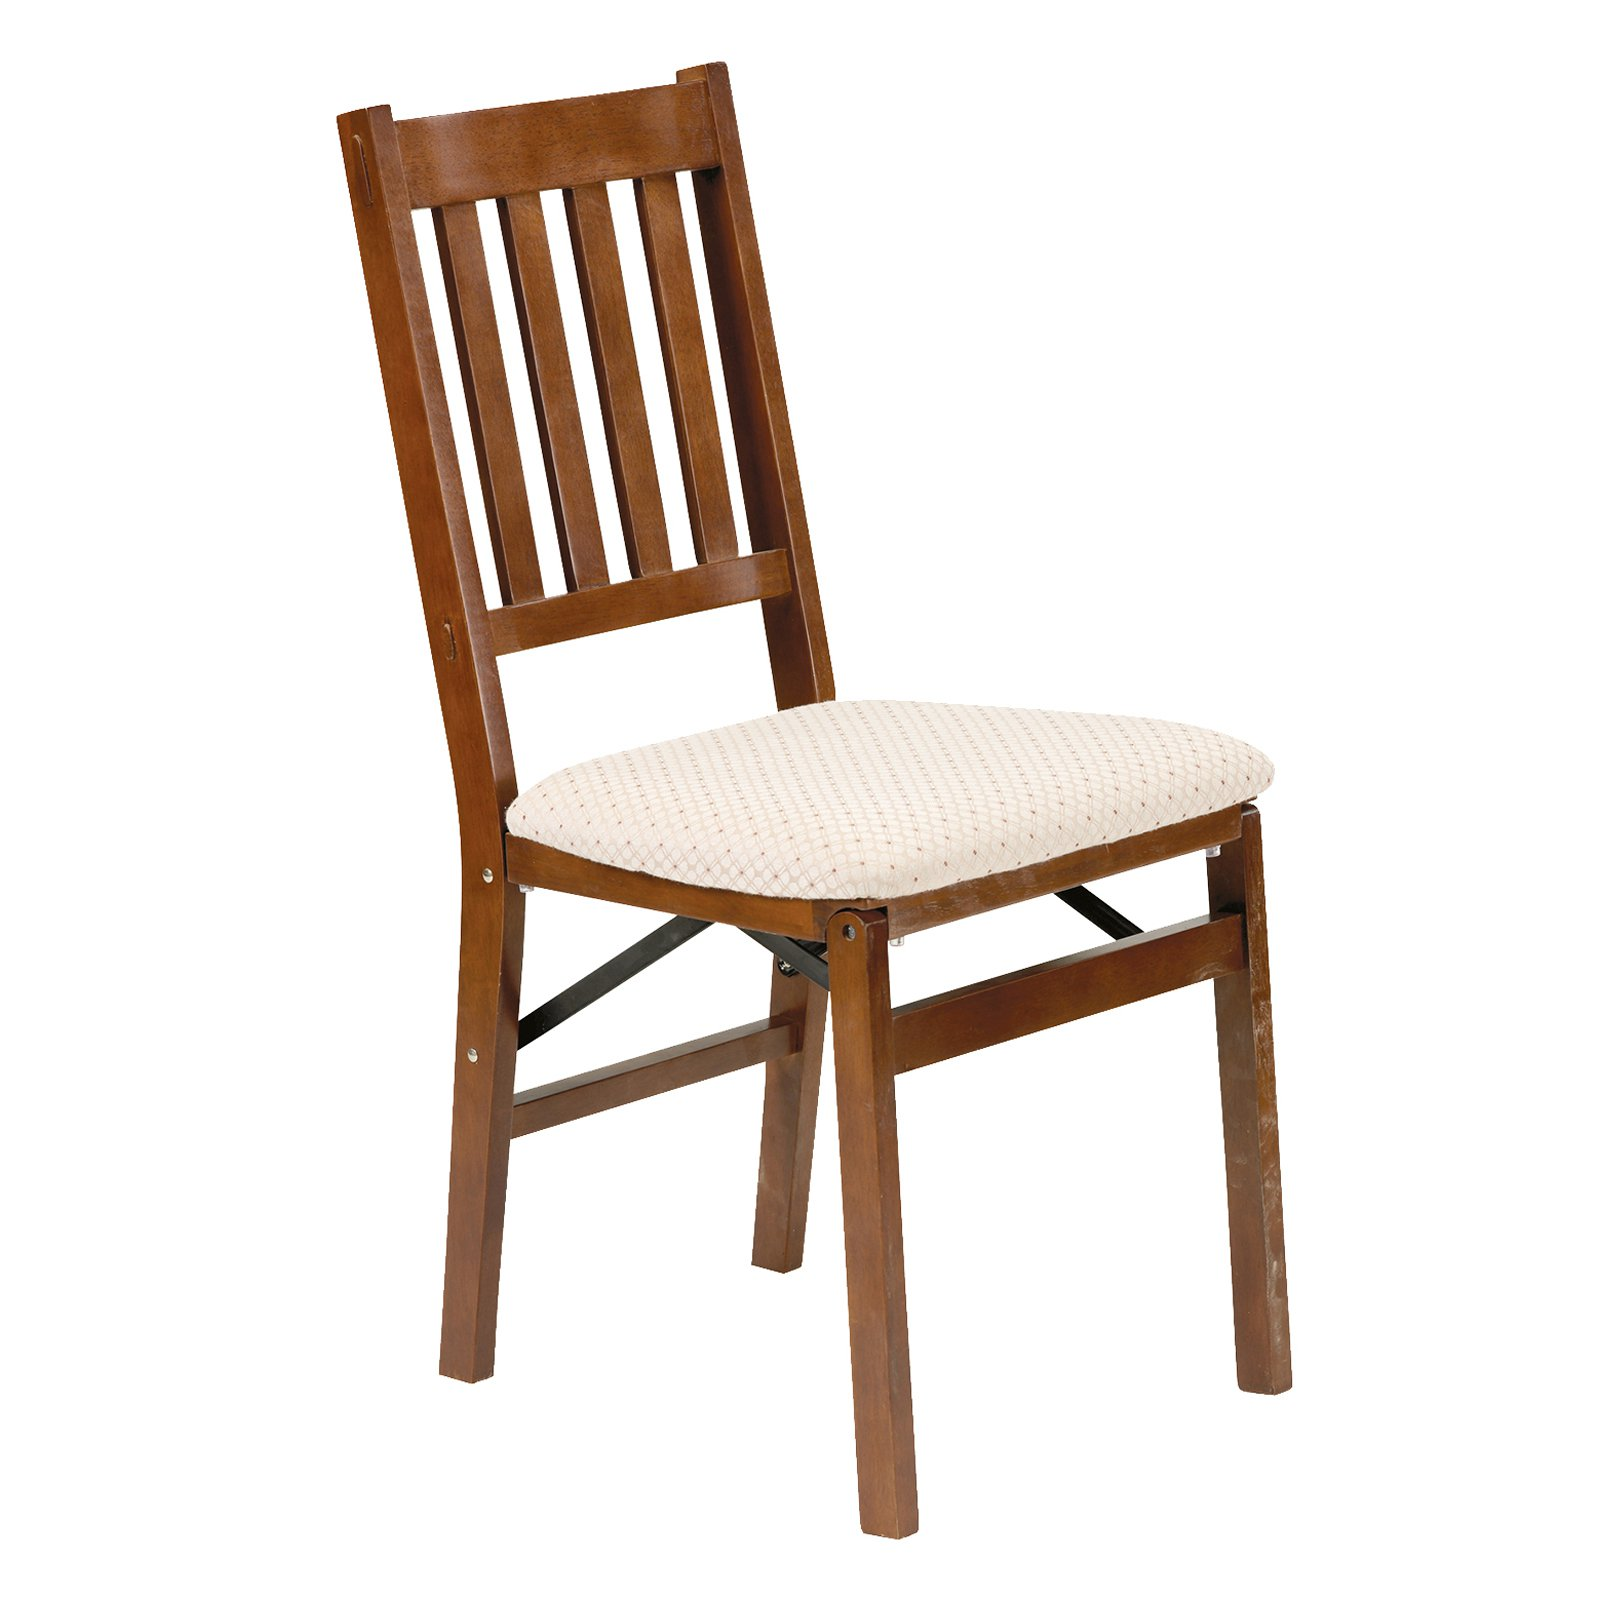 Arts and Craft Harwood folding chair with blush upholstery - Fruitwood